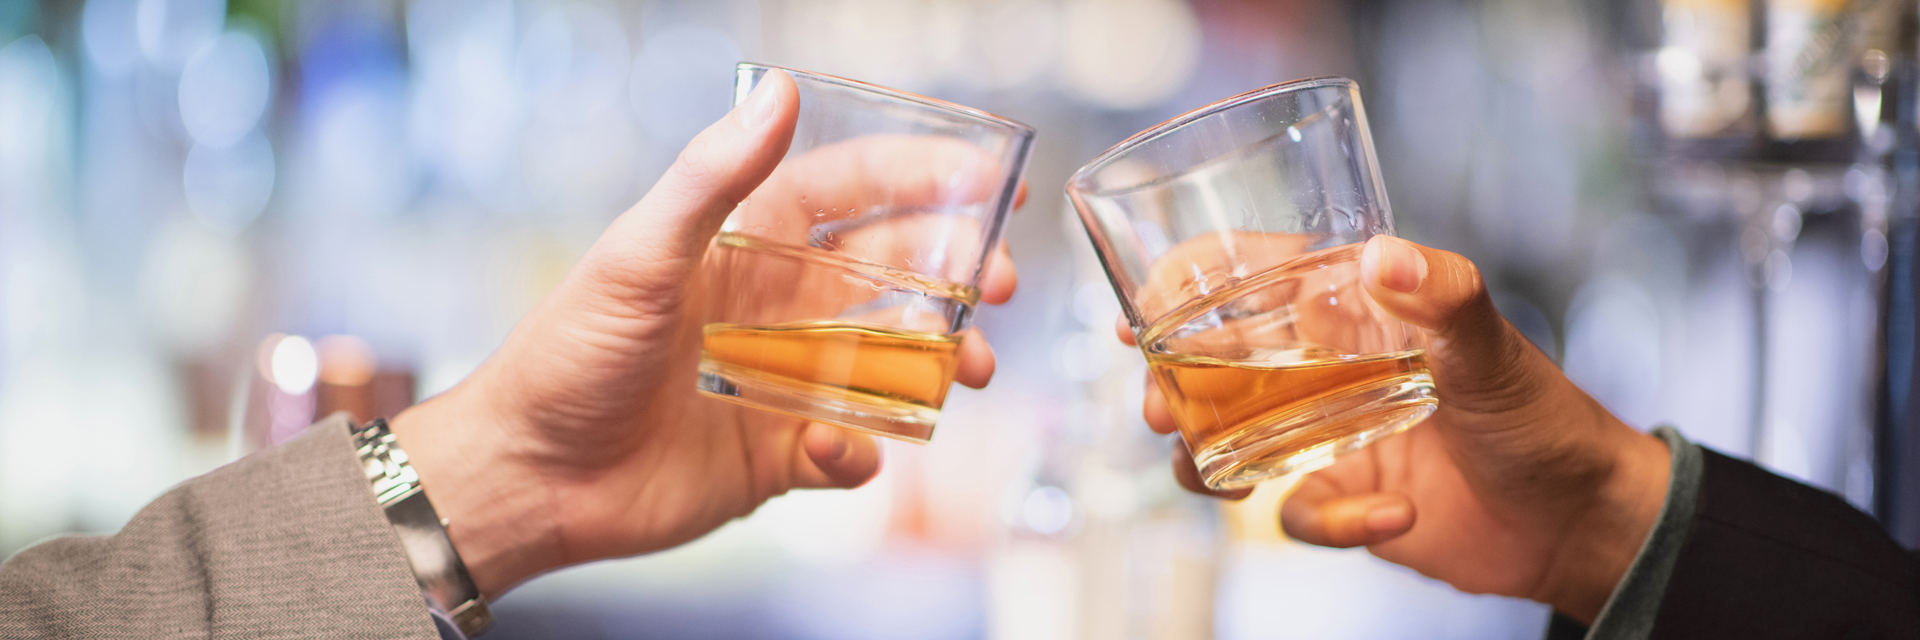 A closeup of two men's hands toasting with glasses of Scotch